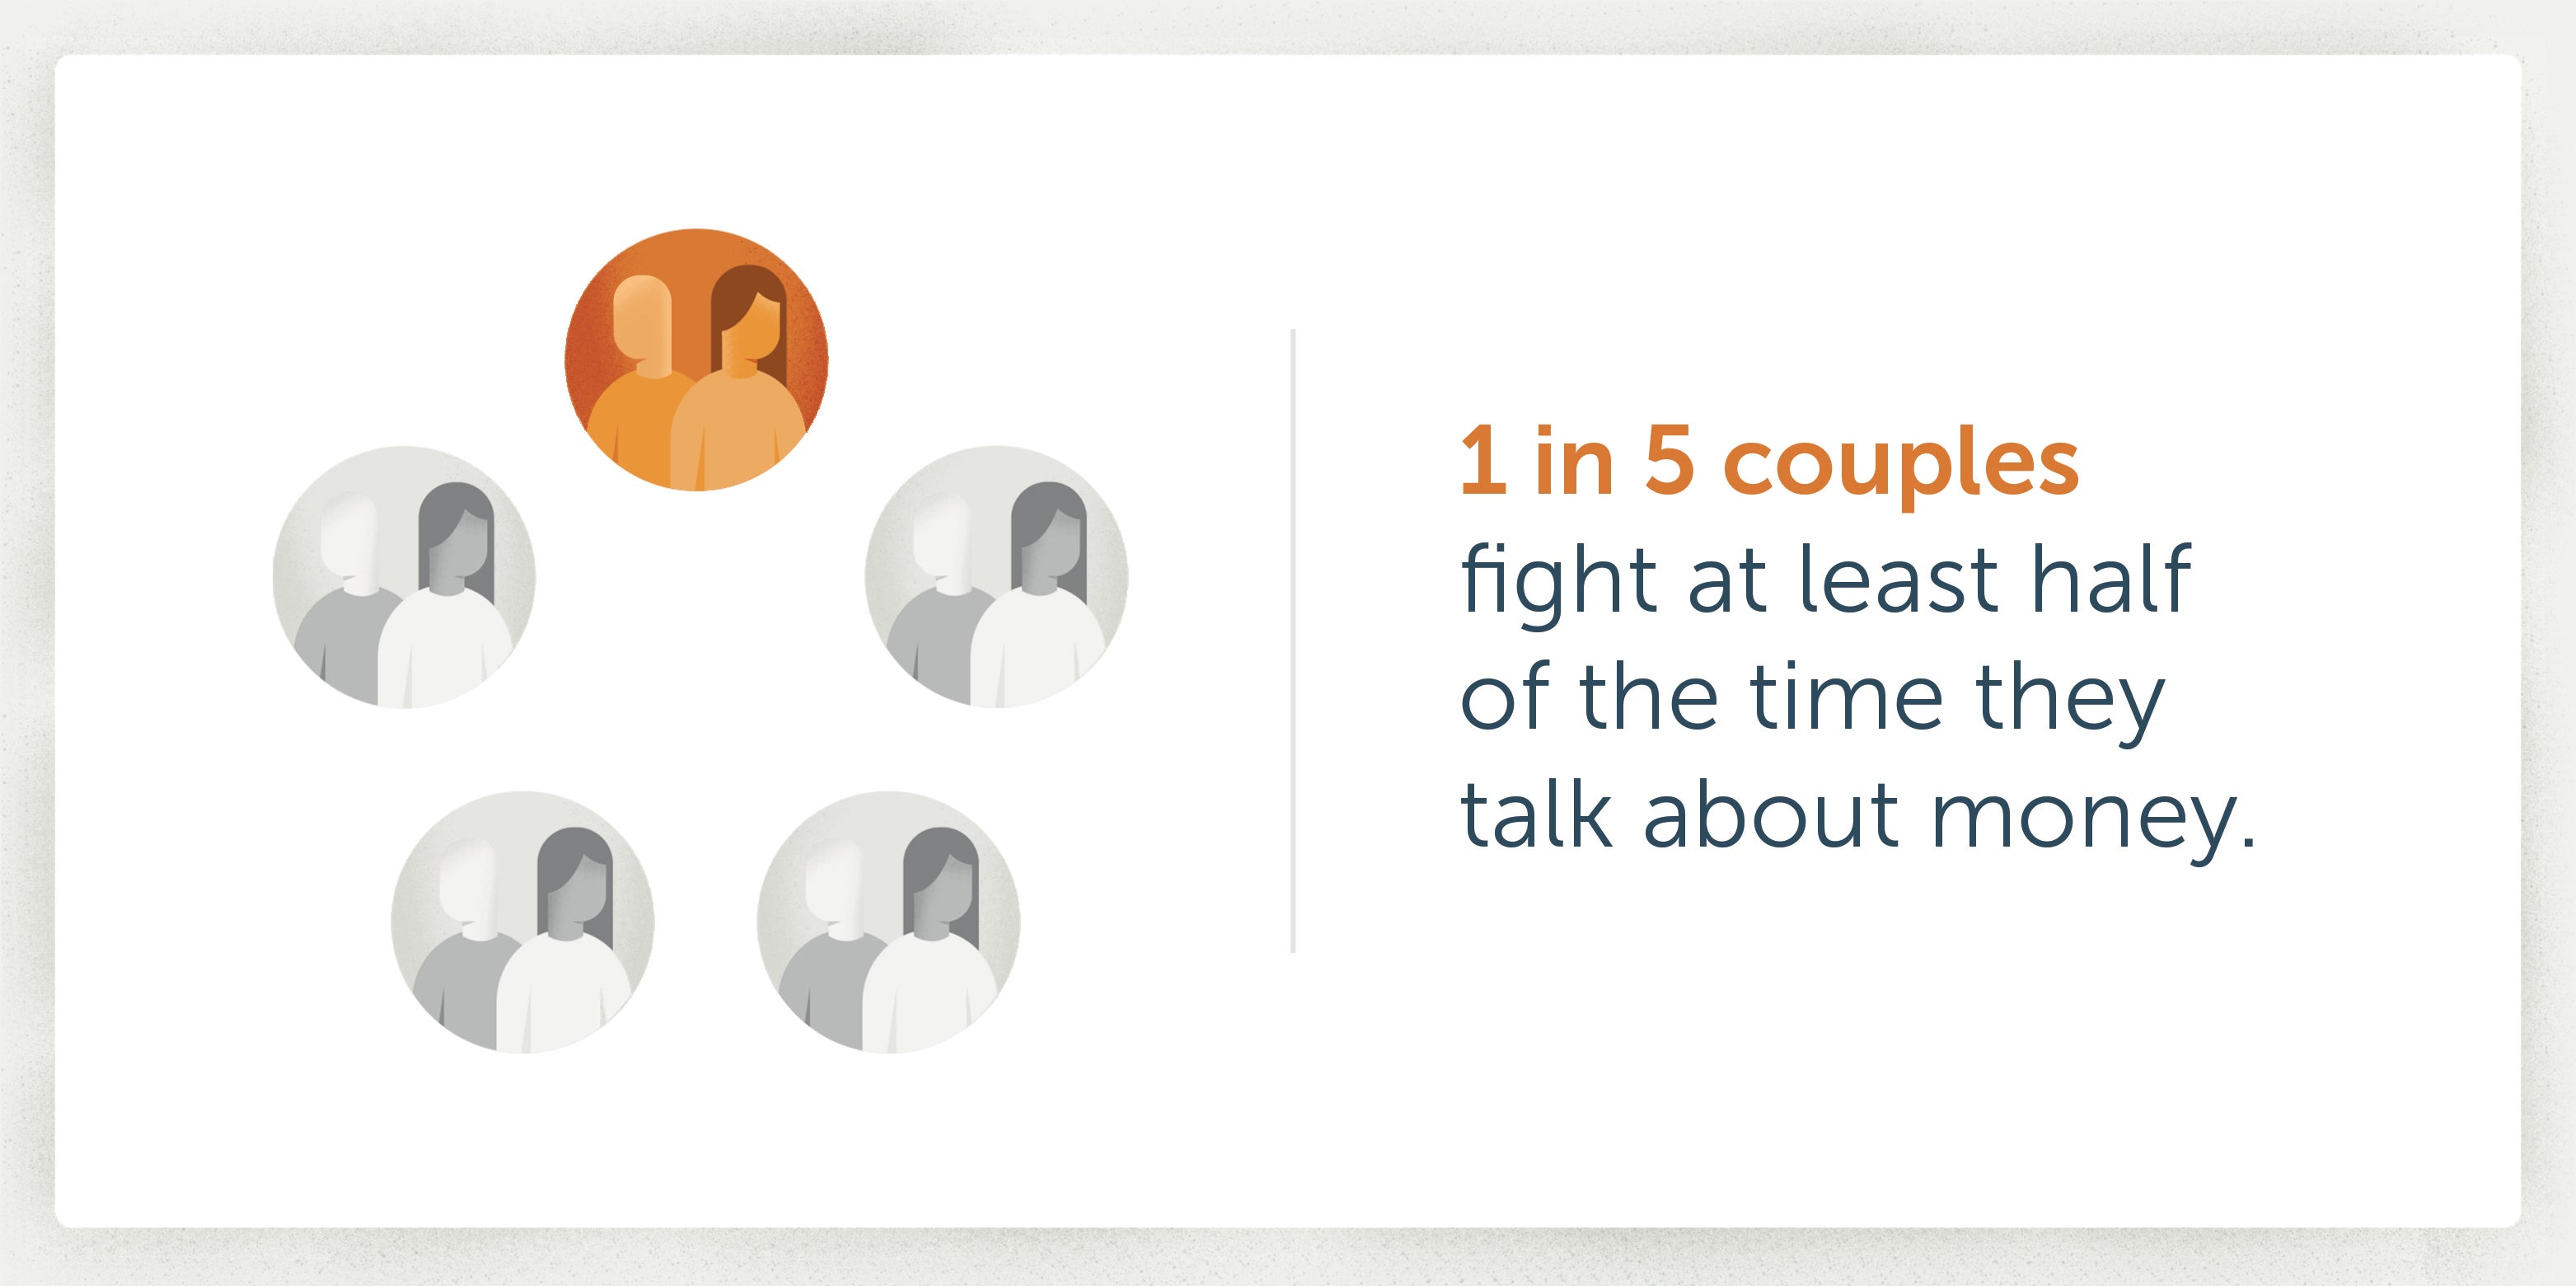 1 in 5 couples fight at least half of the time they talk about money